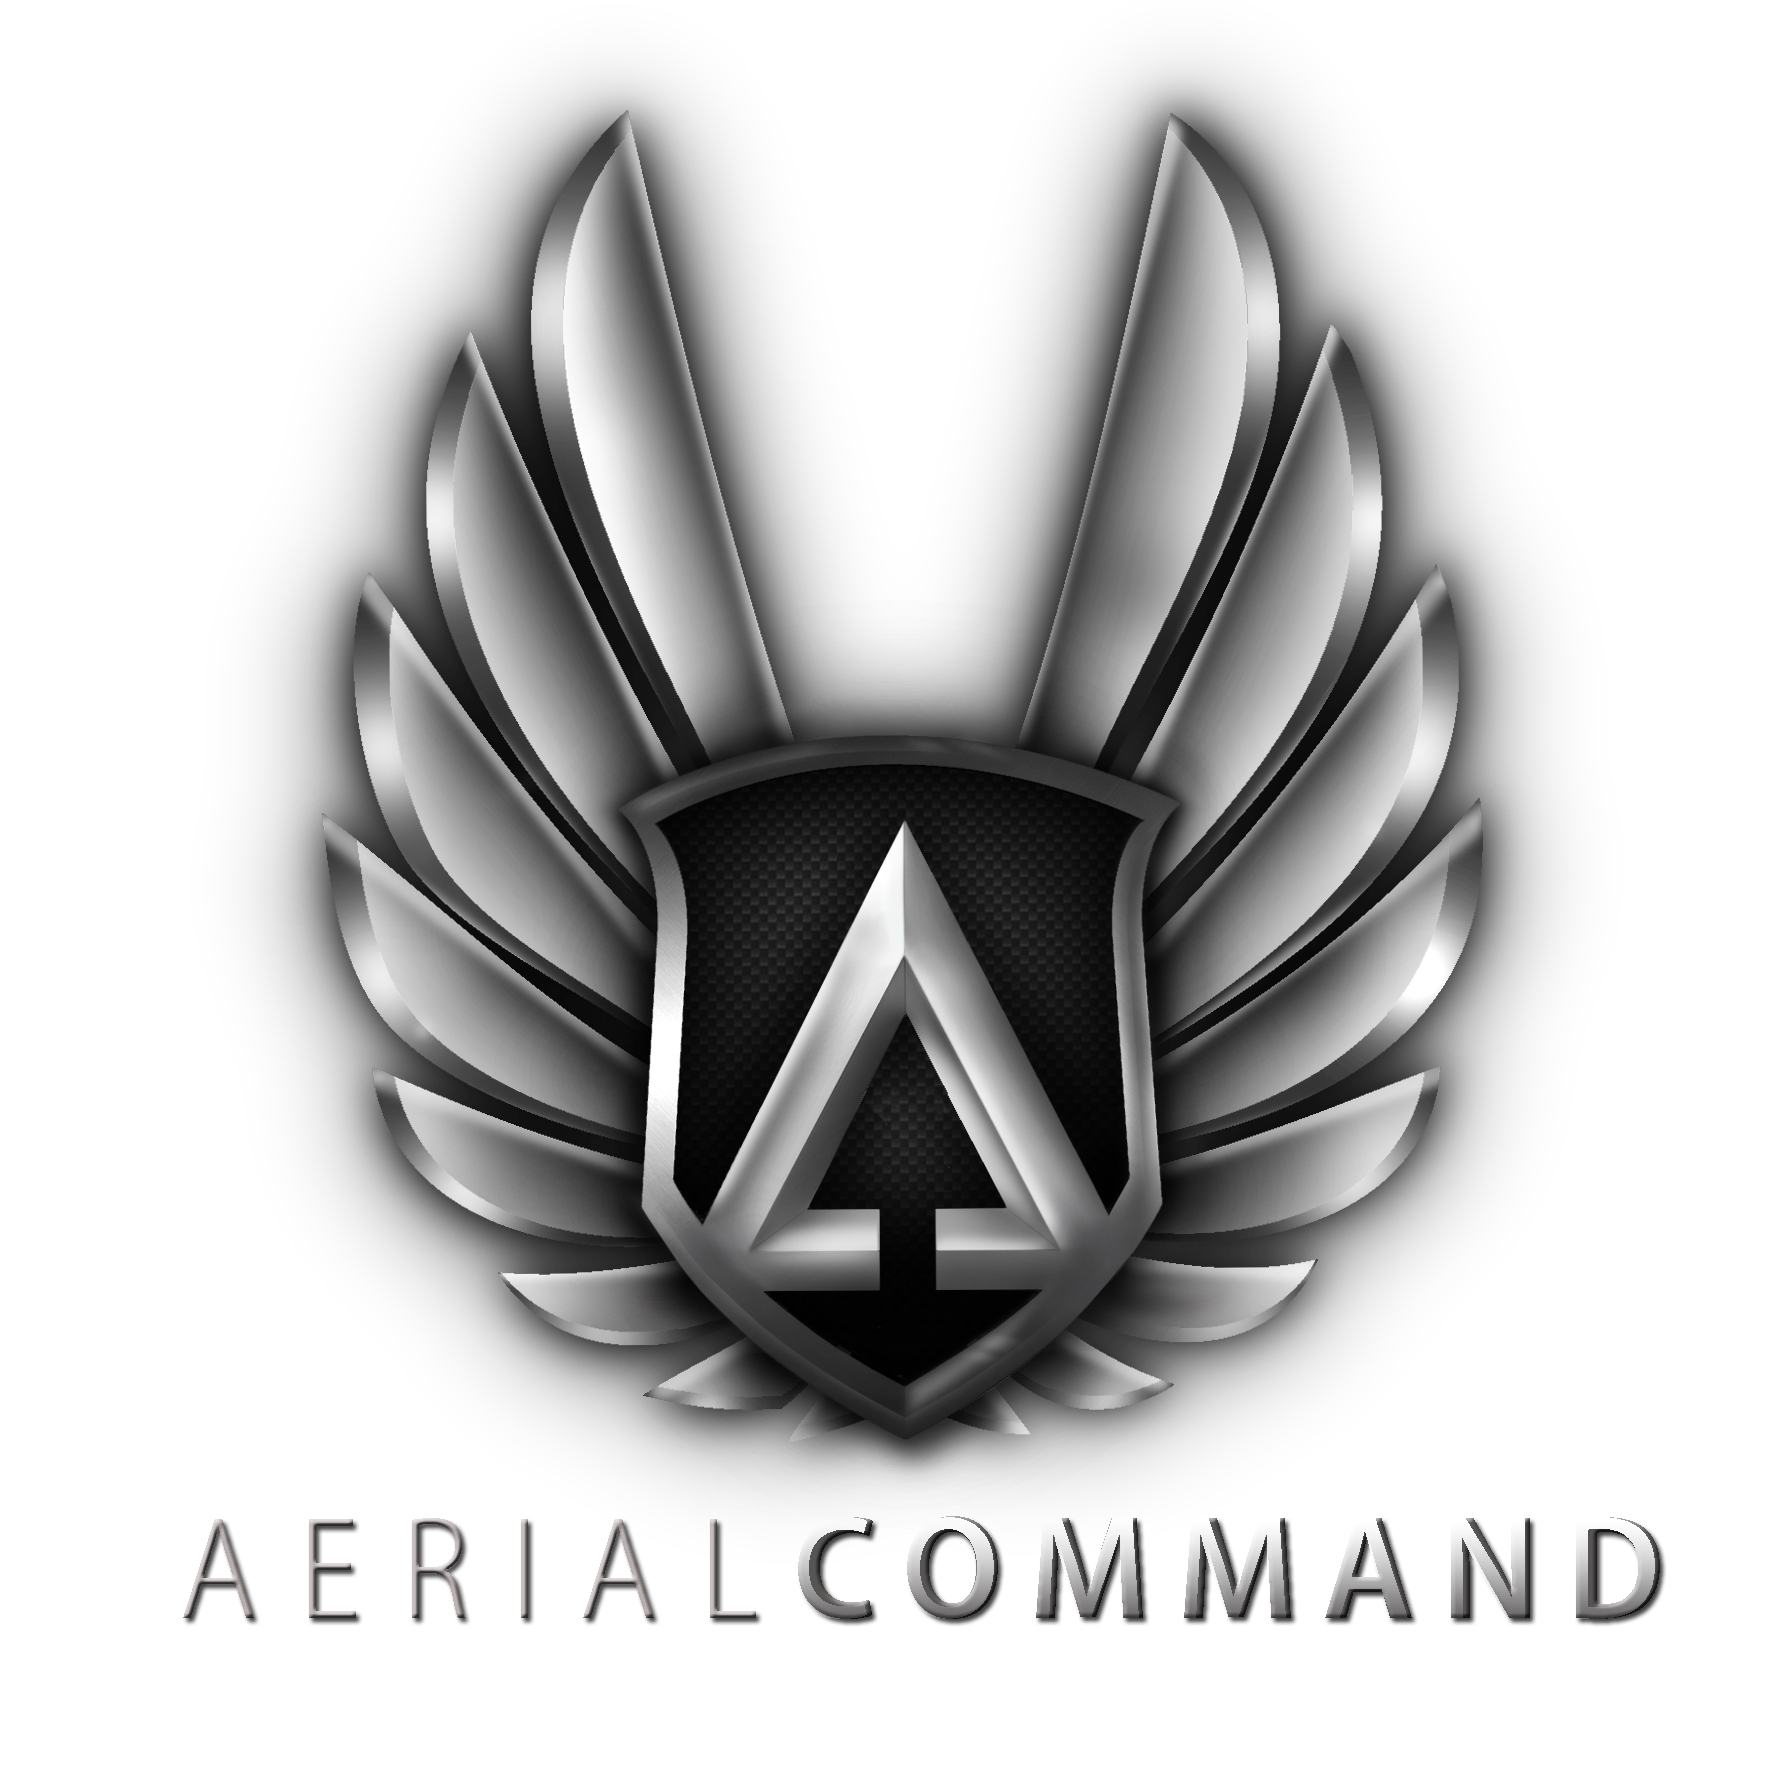 WHAT WE DO - Aerial Command Nashville is owned and operated by Warren Pettit, a FAA-certified drone pilot with 15 years flying experience. Our services include:- STOCK VIDEO LIBRARY: the most extensive library of 4k aerial video of Nashville and the middle Tennessee area.- CUSTOM VIDEO: on location shooting for any client.For professional, safe and courteous service, call 615.310.2660.